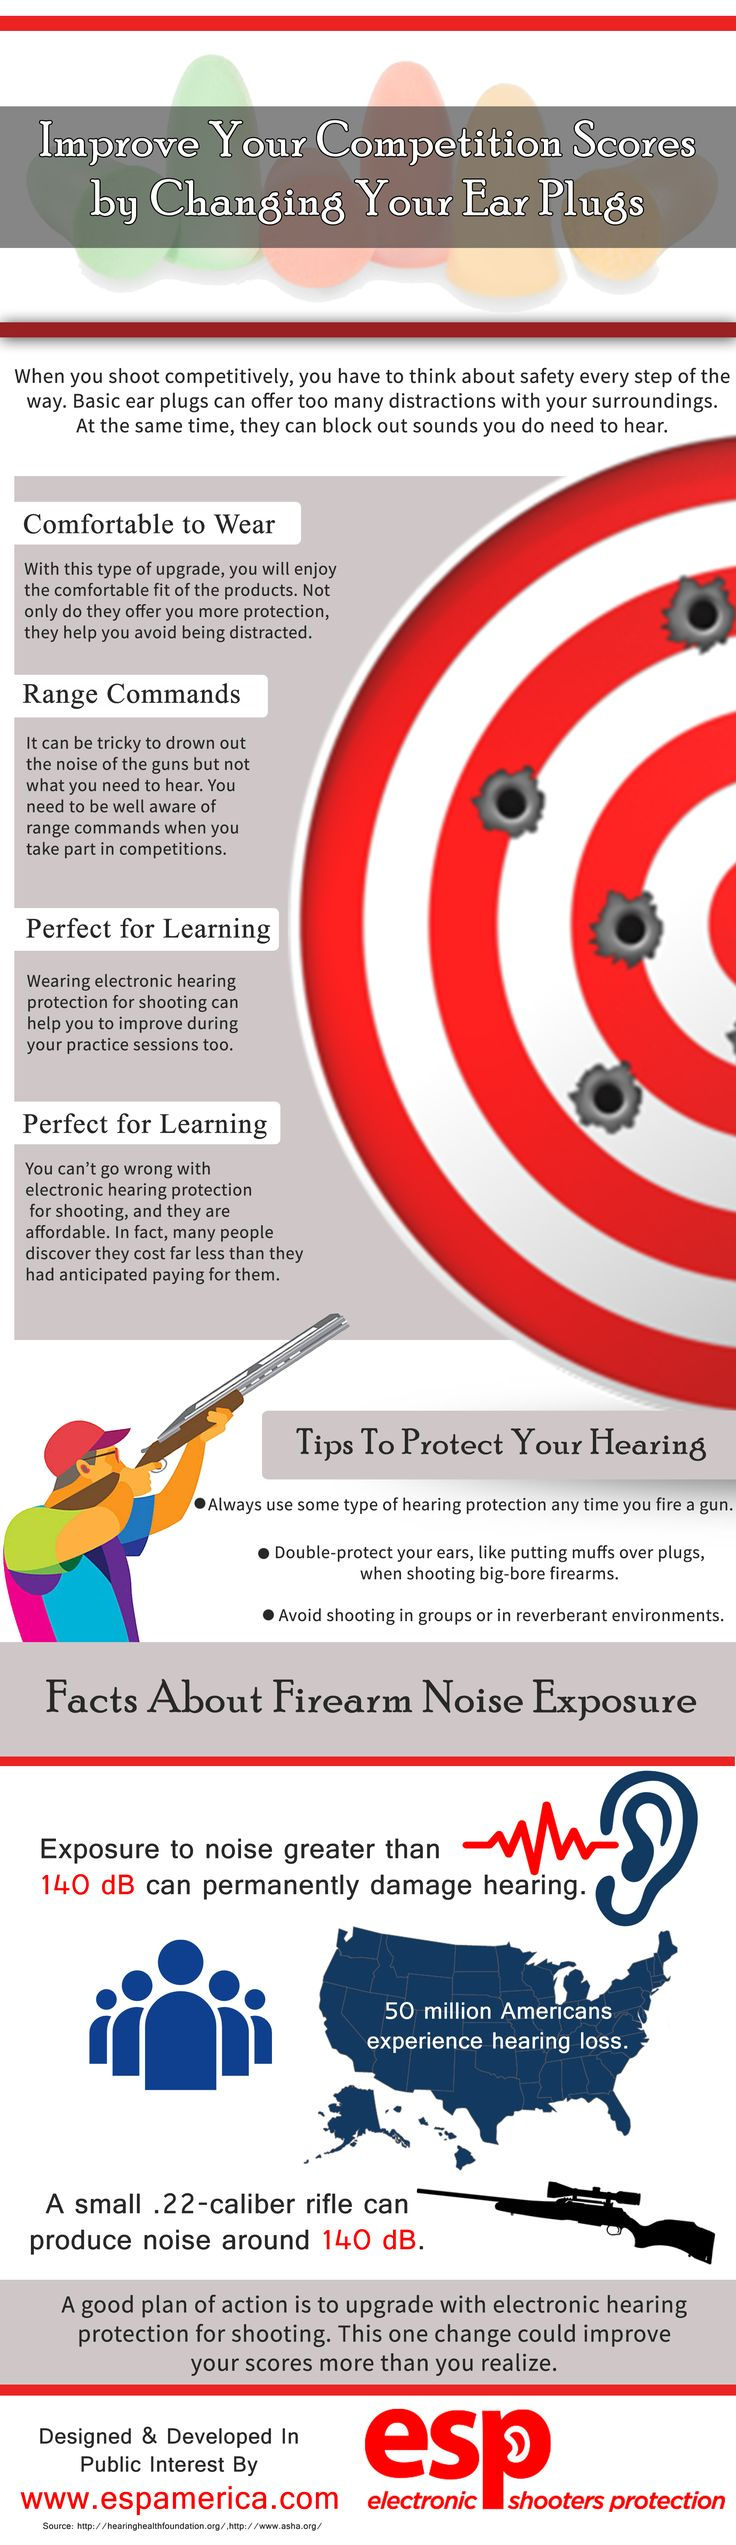 This infographic provide information on Improve your Competition Scores by Changing your Ear plugs.